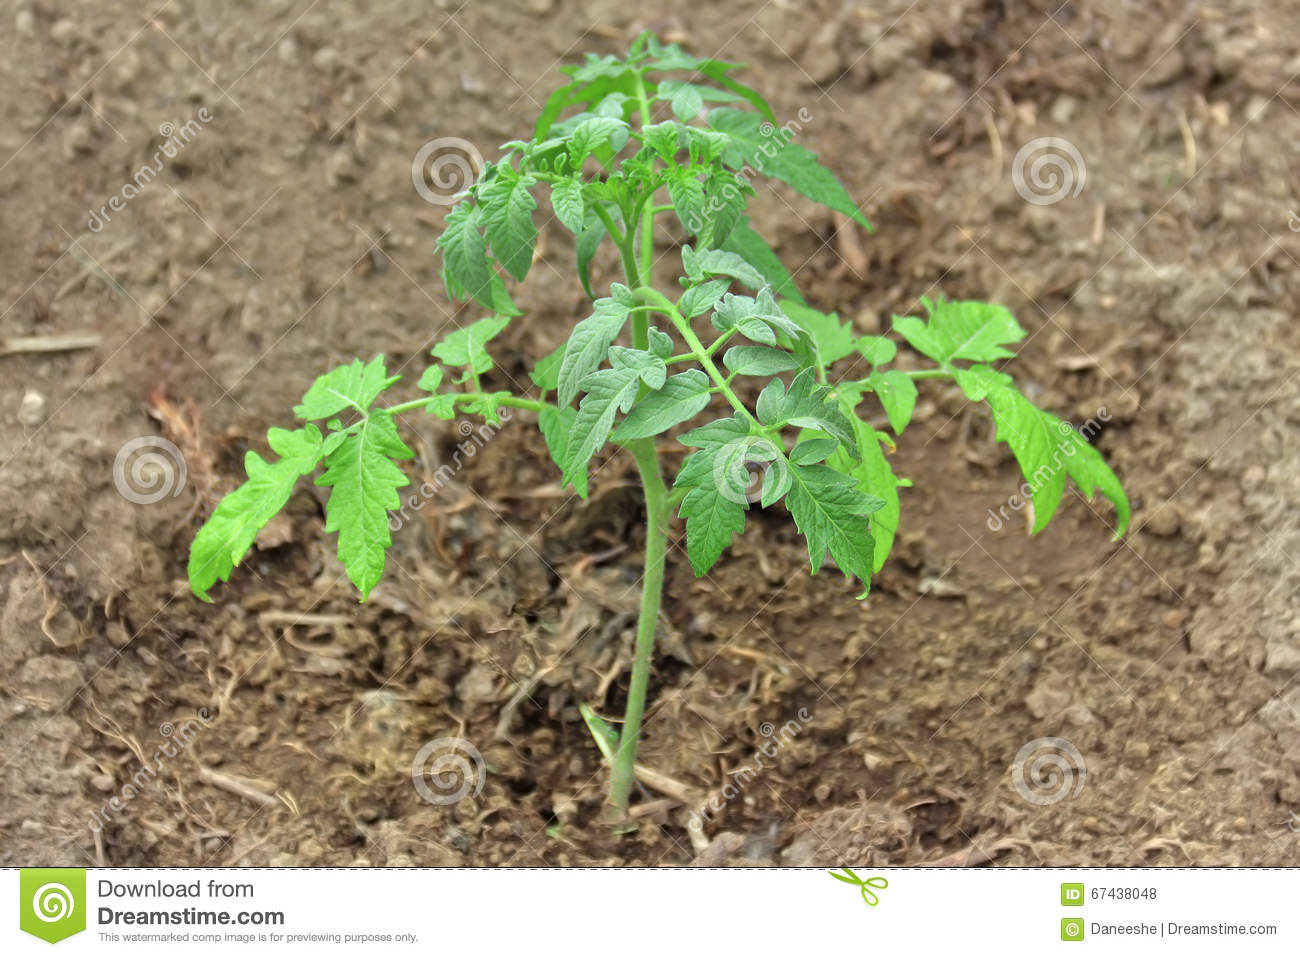 gardens a garden tips problems leaves tomato leaf guide pin disease gardening vegetable and visual